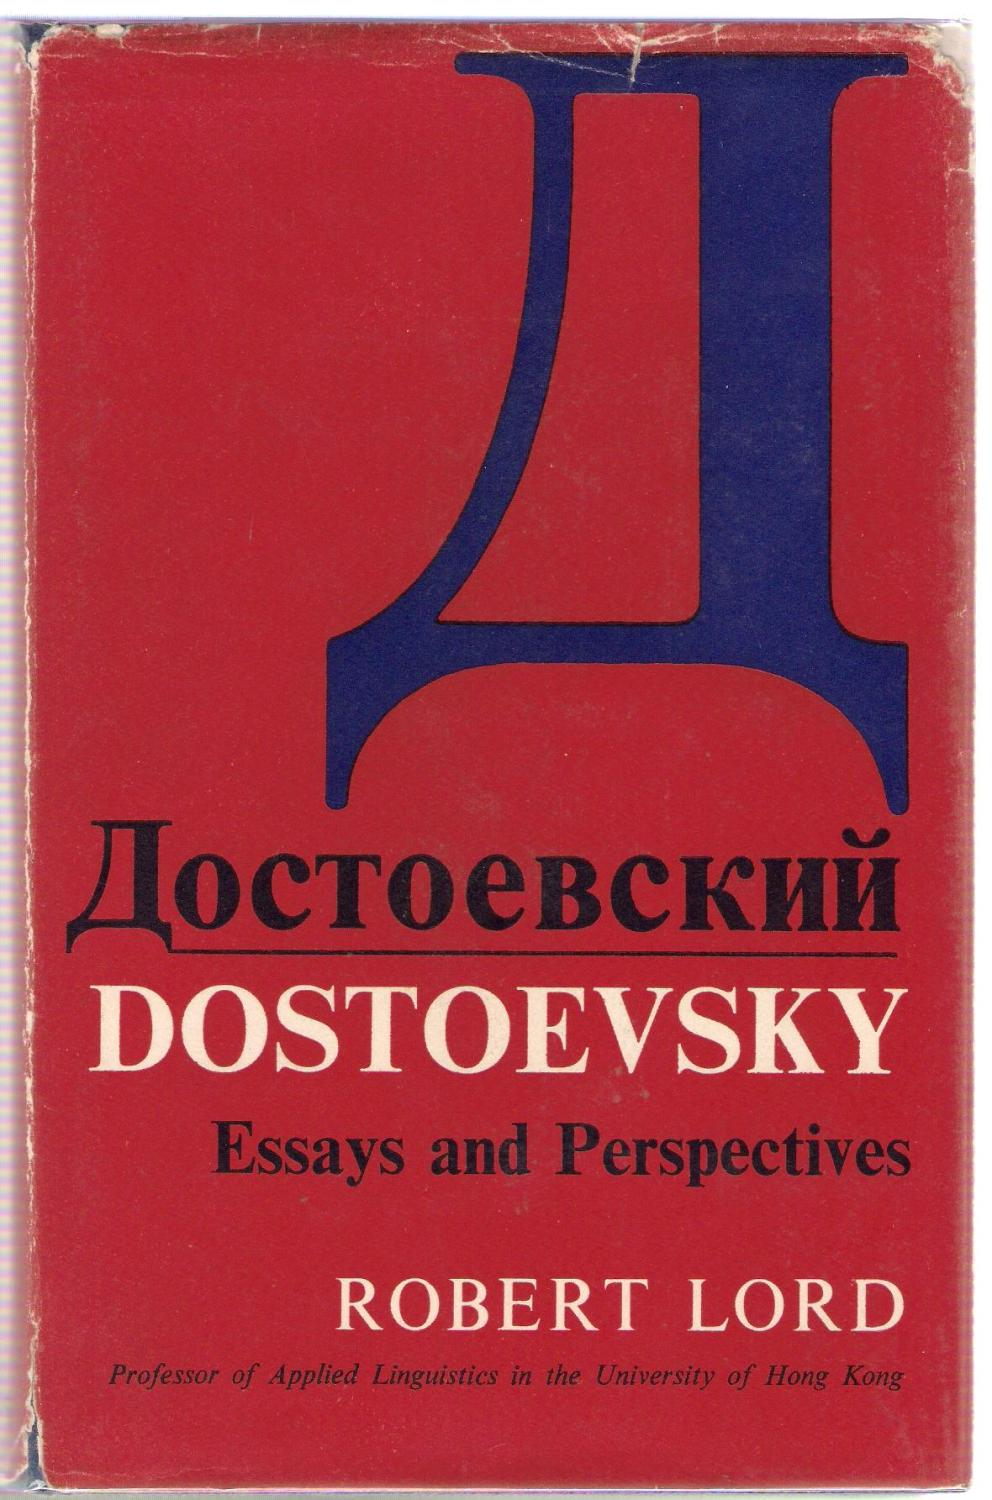 dostoevsky essay Fyodor dostoevsky essay - fyodor dostoevsky, the second of seven children was born on october 30, 1821, in moscow, russia shortly after his mother died of tuberculosis in 1837.